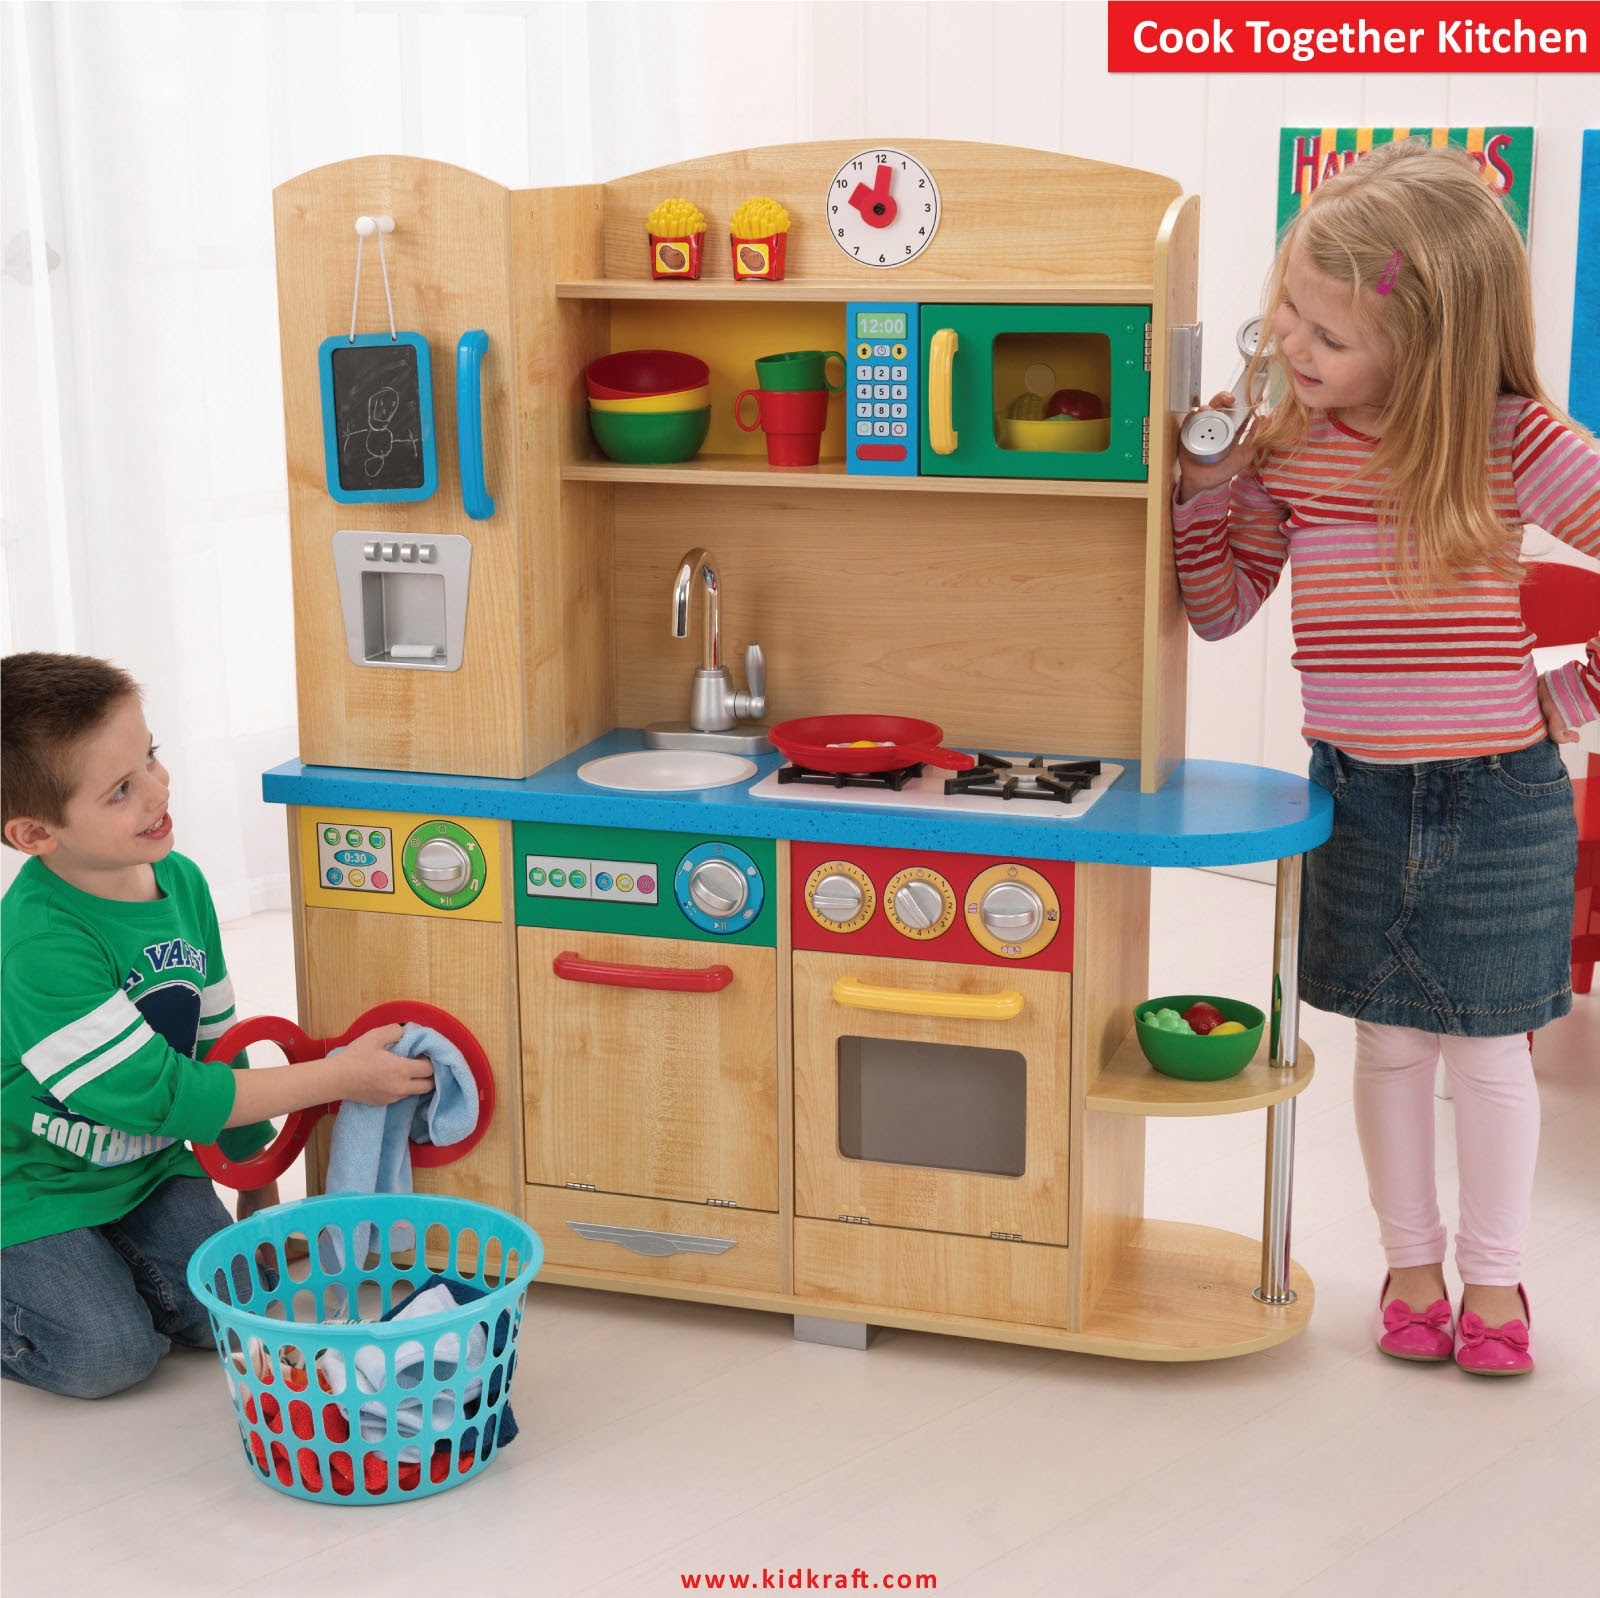 Kitchen Chairs For Cooking: KidKraft Toys & Furniture: In Stores Now! Cook Together